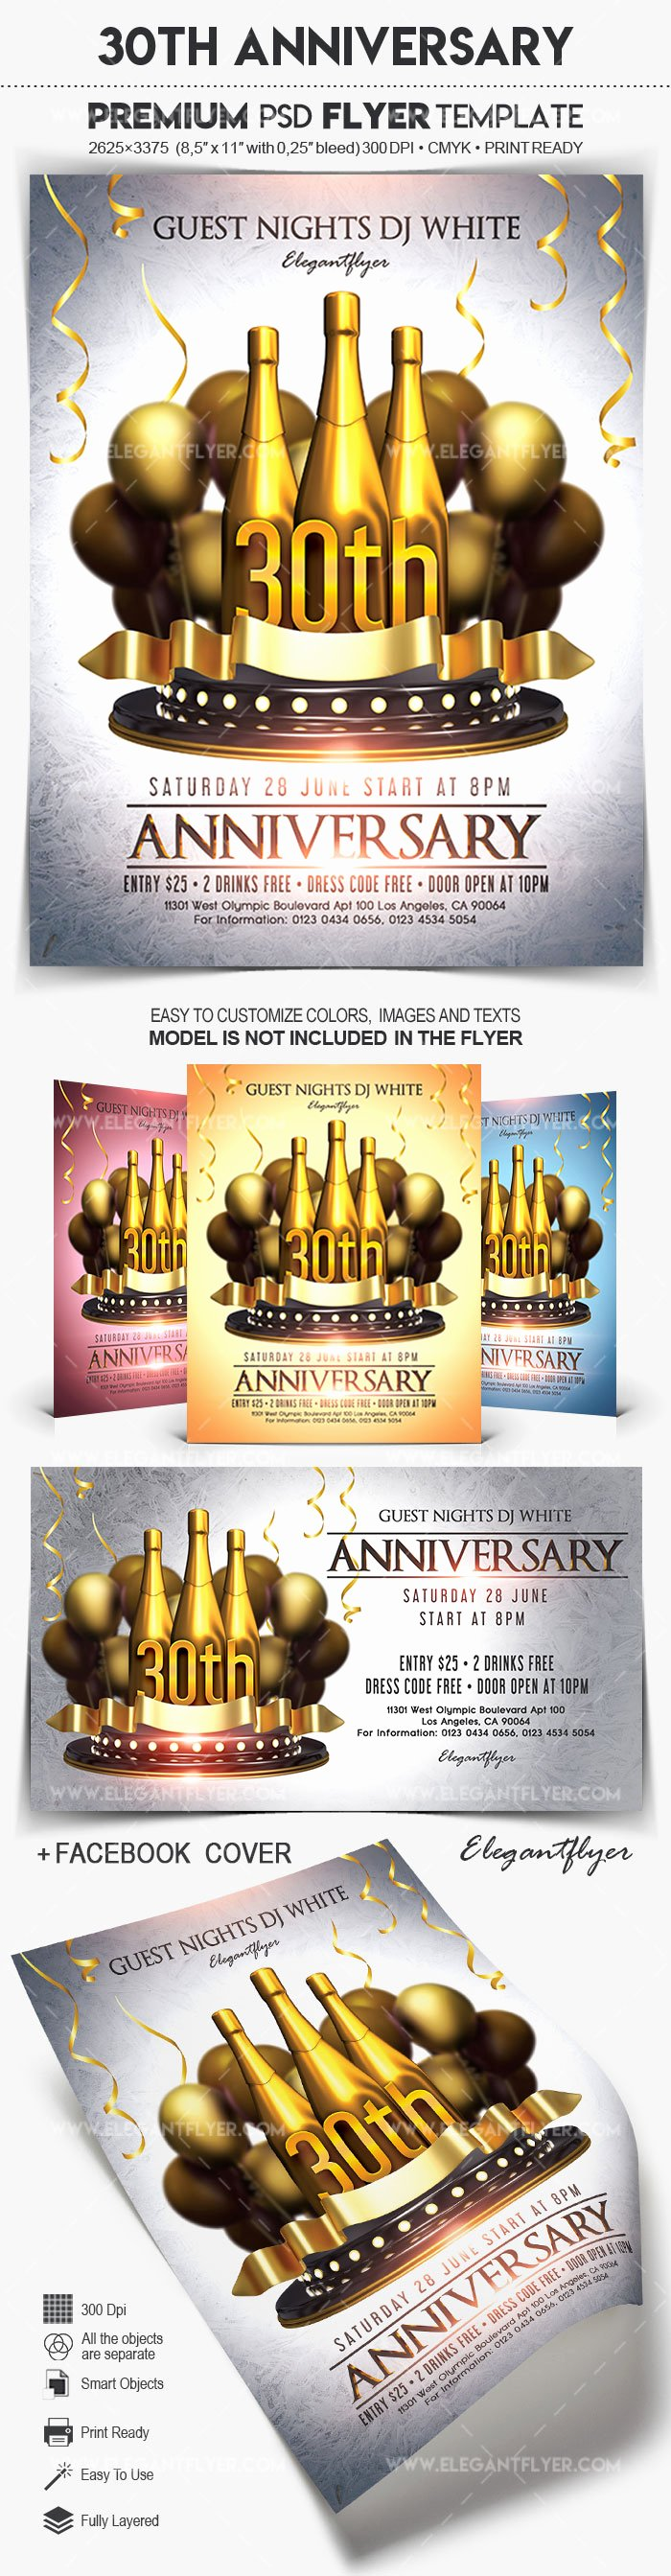 30th Birthday Poster Templates Inspirational 30th Anniversary – Flyer Psd Template – by Elegantflyer